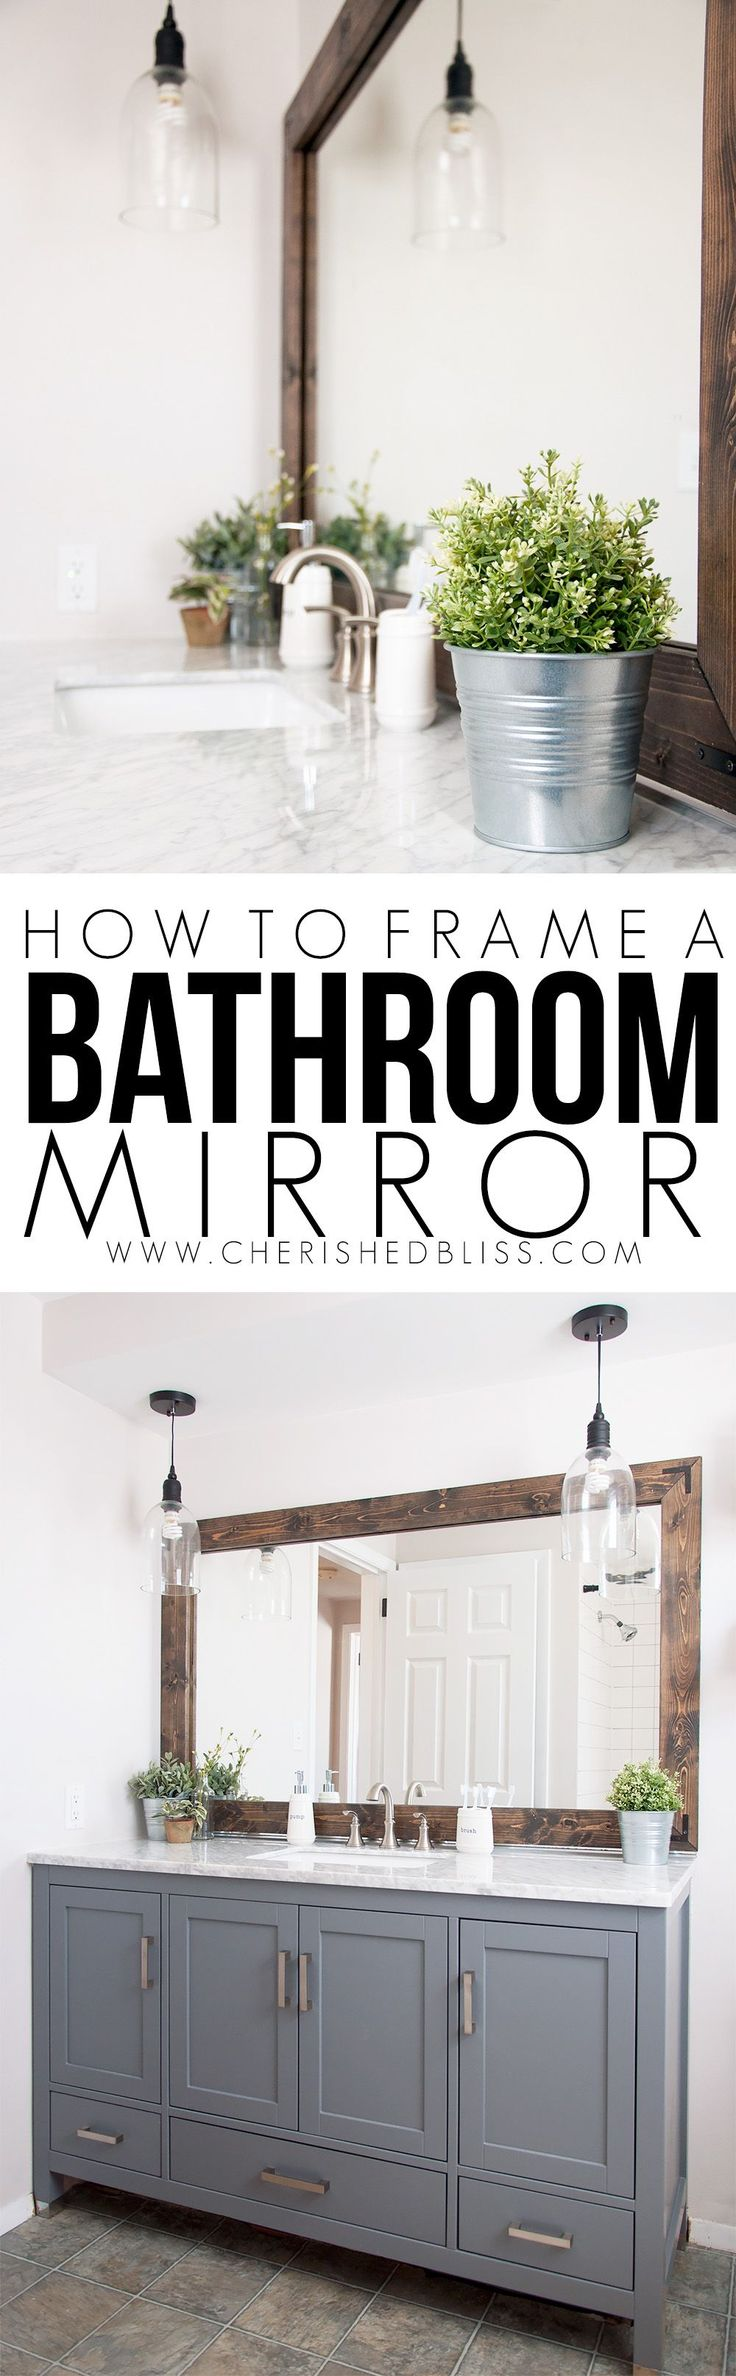 Bathroom mirrors framed 40 inch - How To Frame A Bathroom Mirror